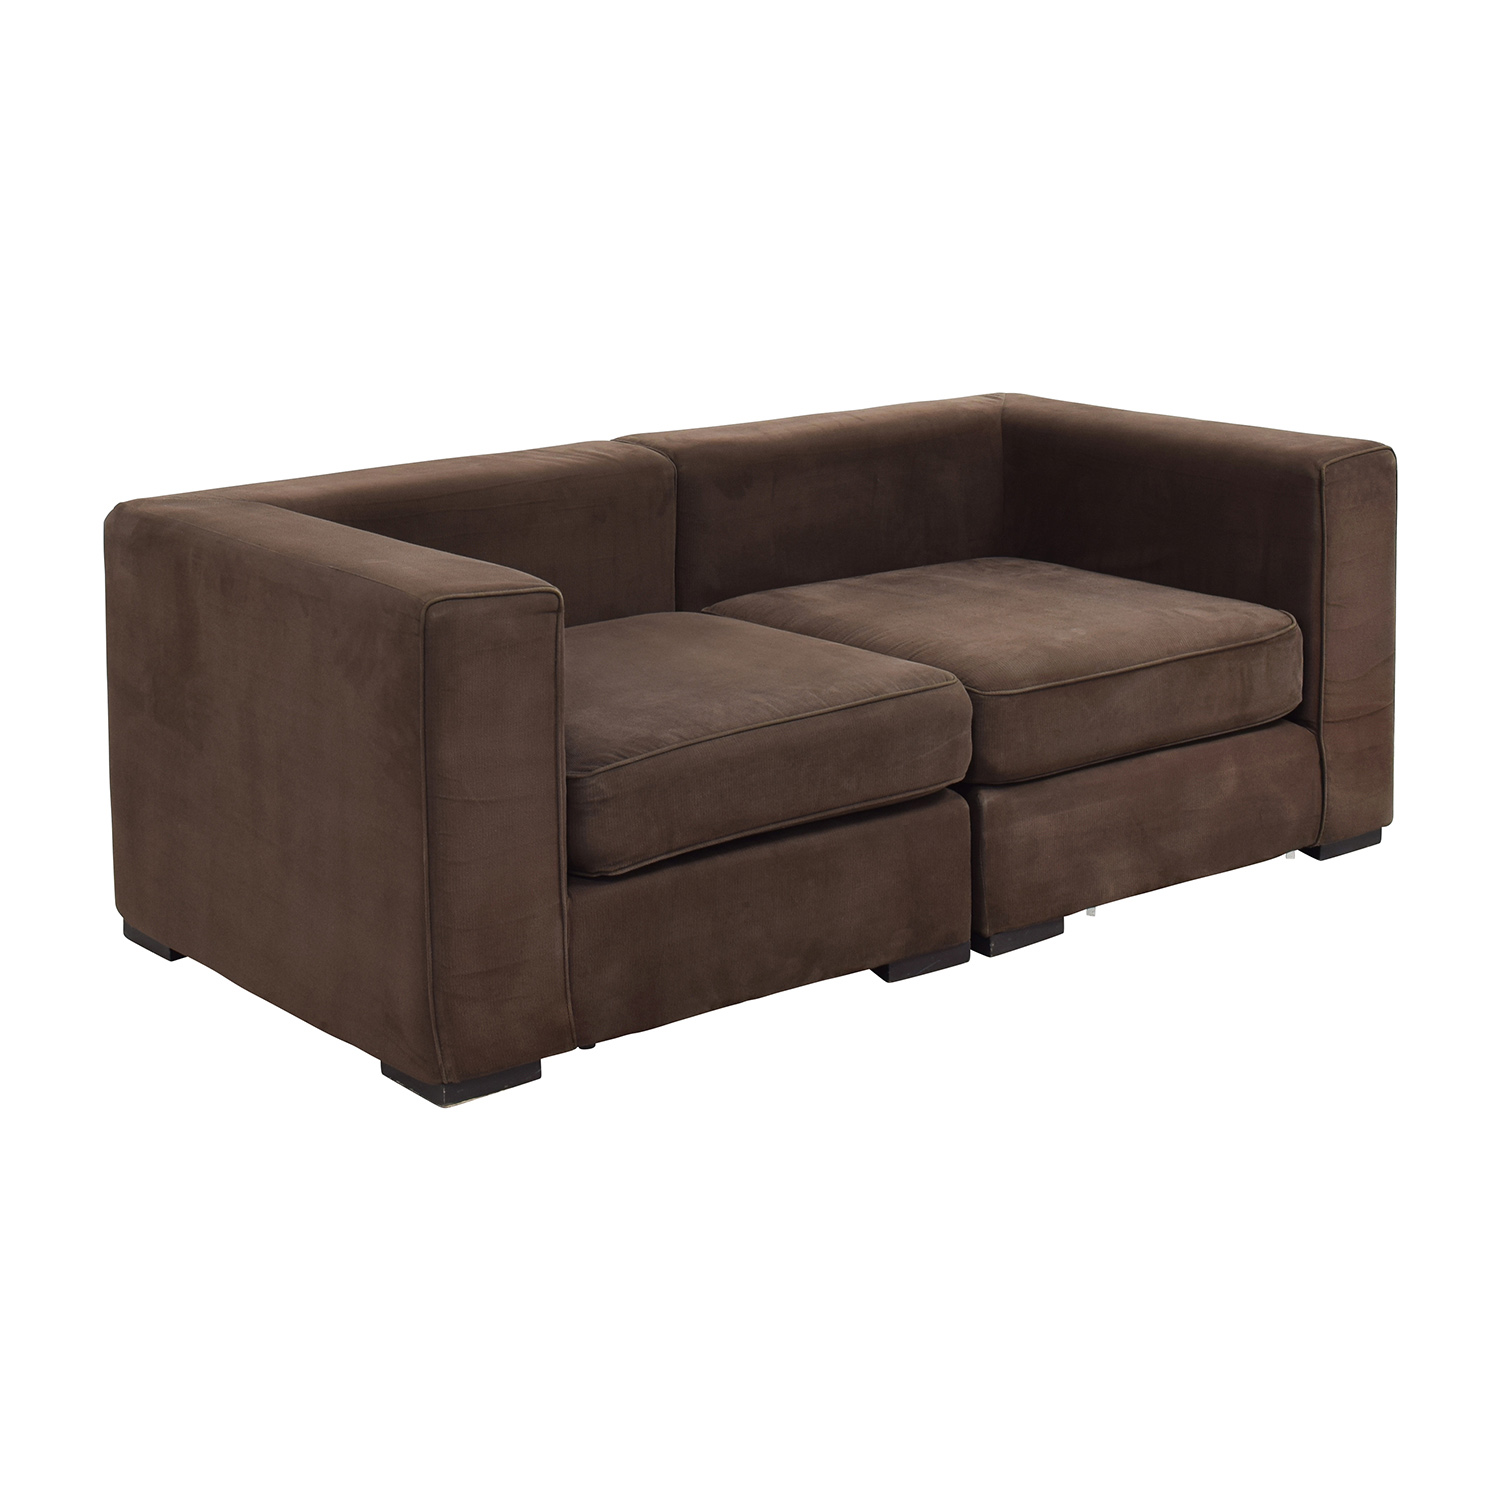 59 off west elm west elm brown modular sofa sofas for Best west elm sofa